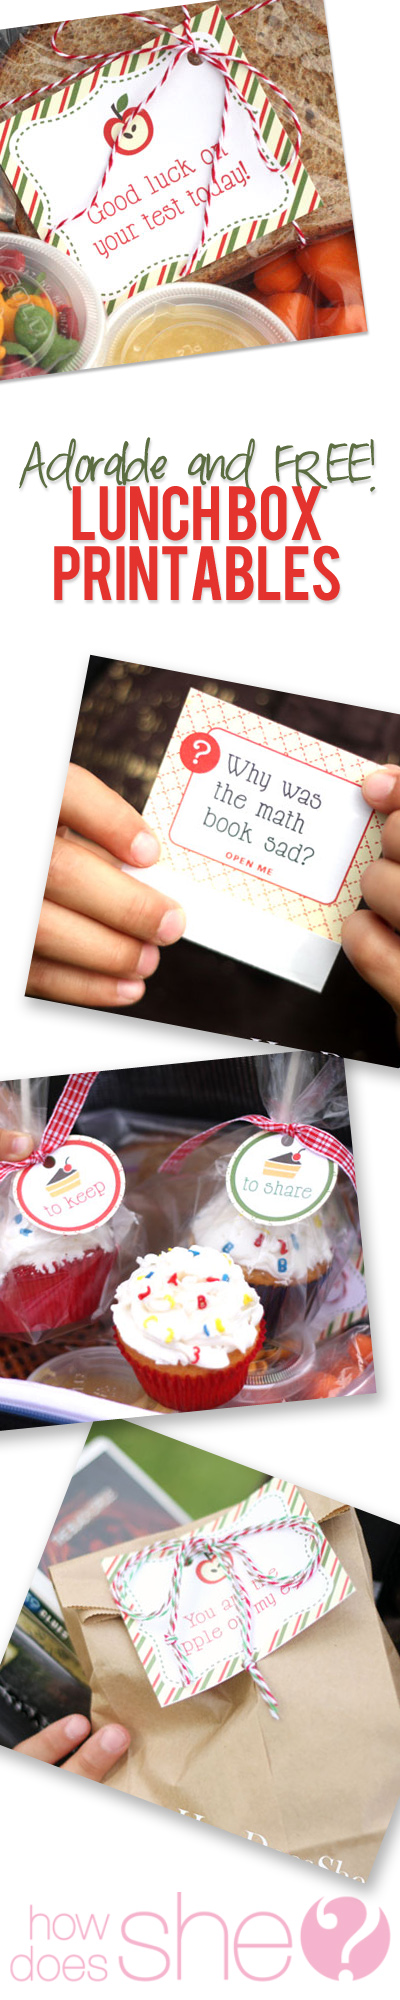 Adorable and free lunch box printables